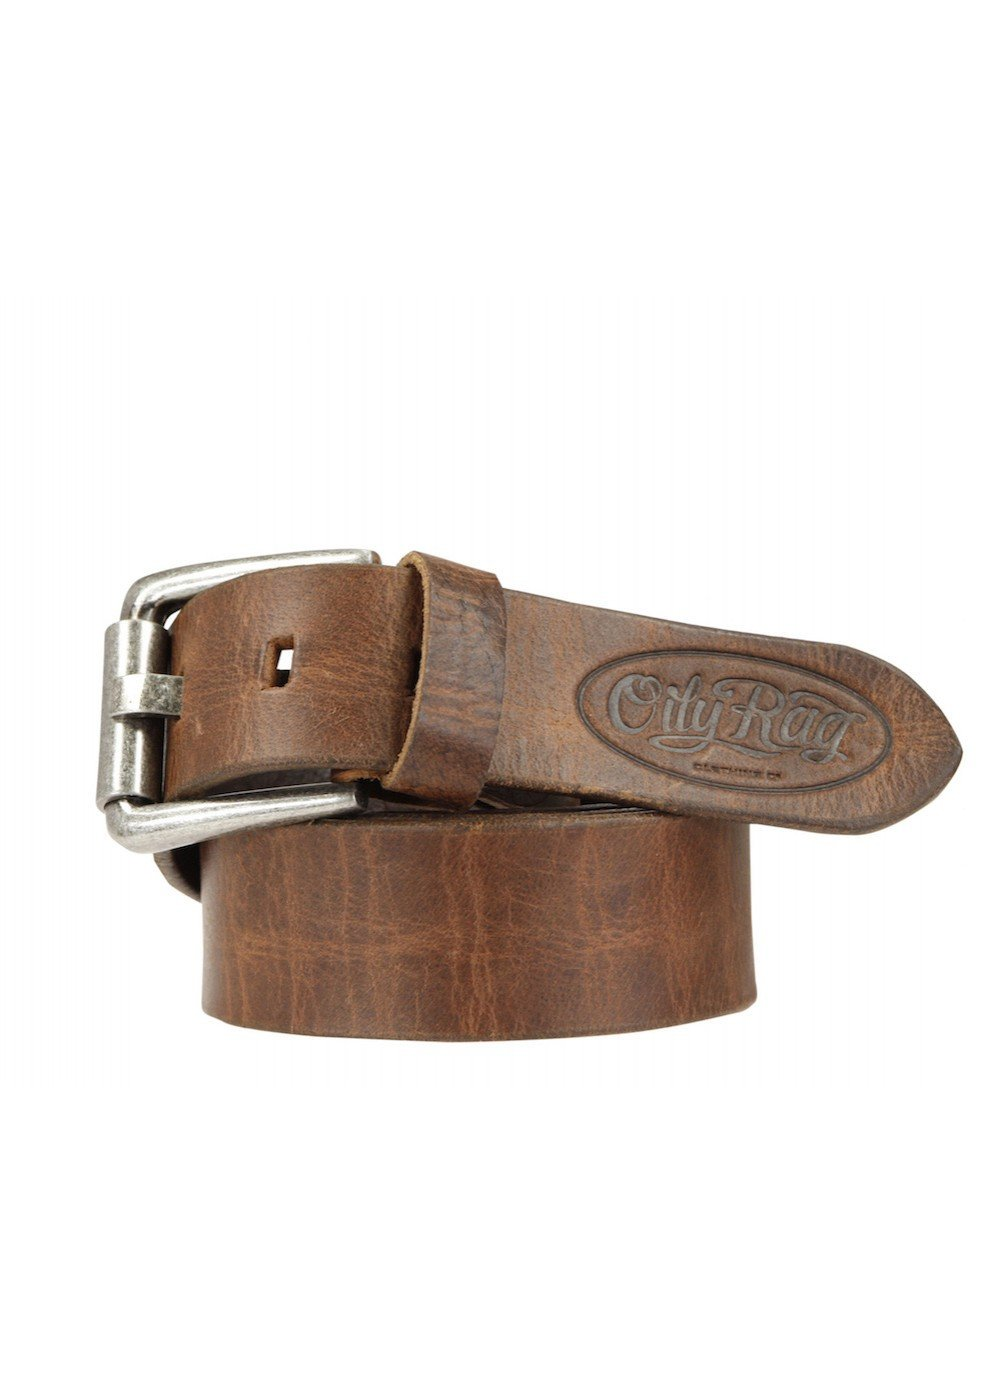 Oily Rag Clothing tan leather belt in Rust